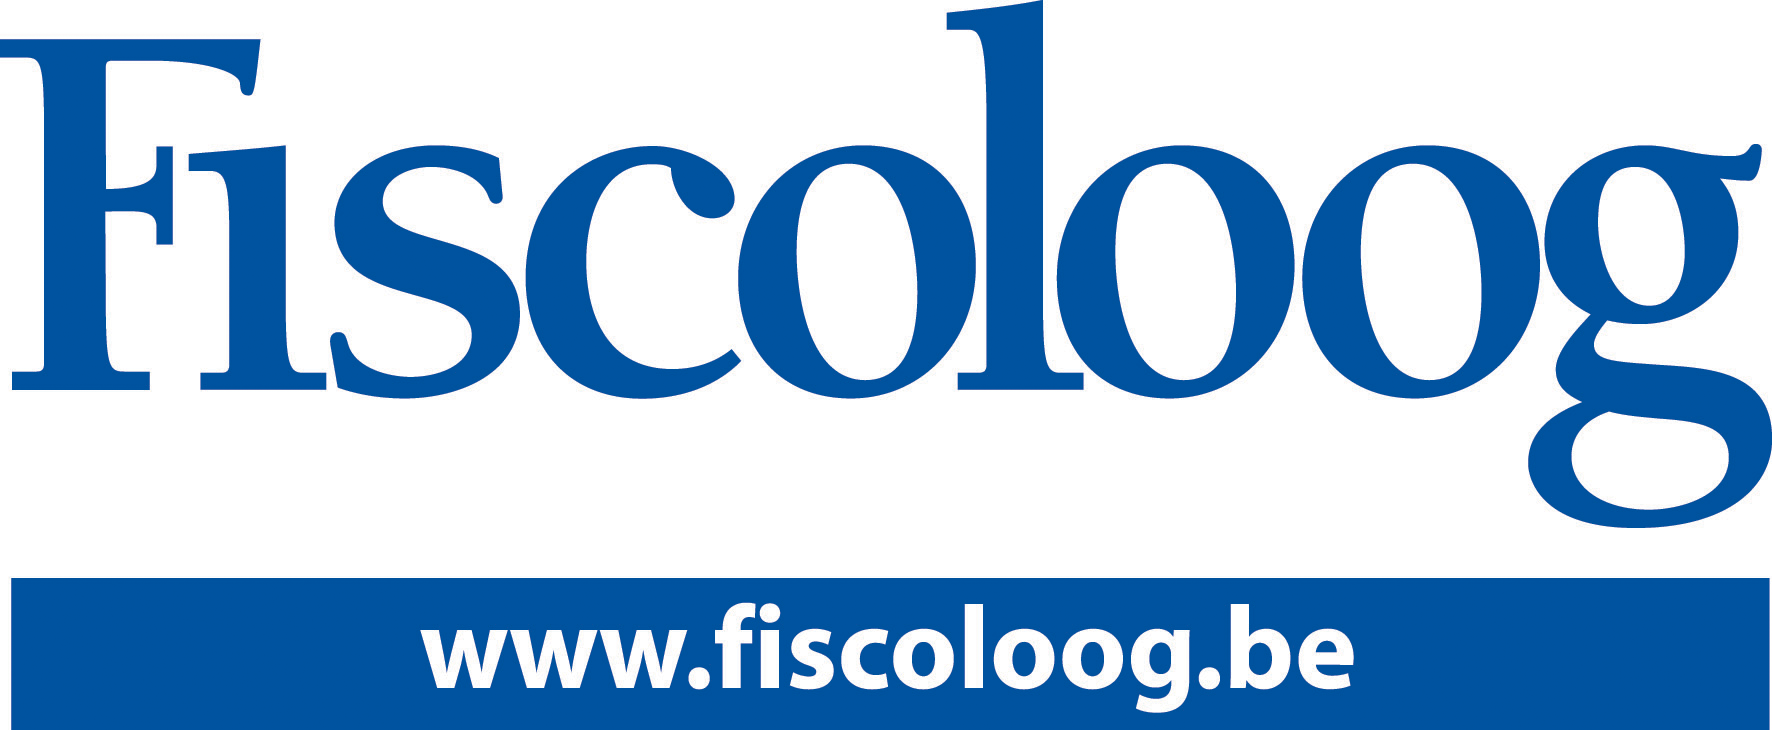 Fiscoloog